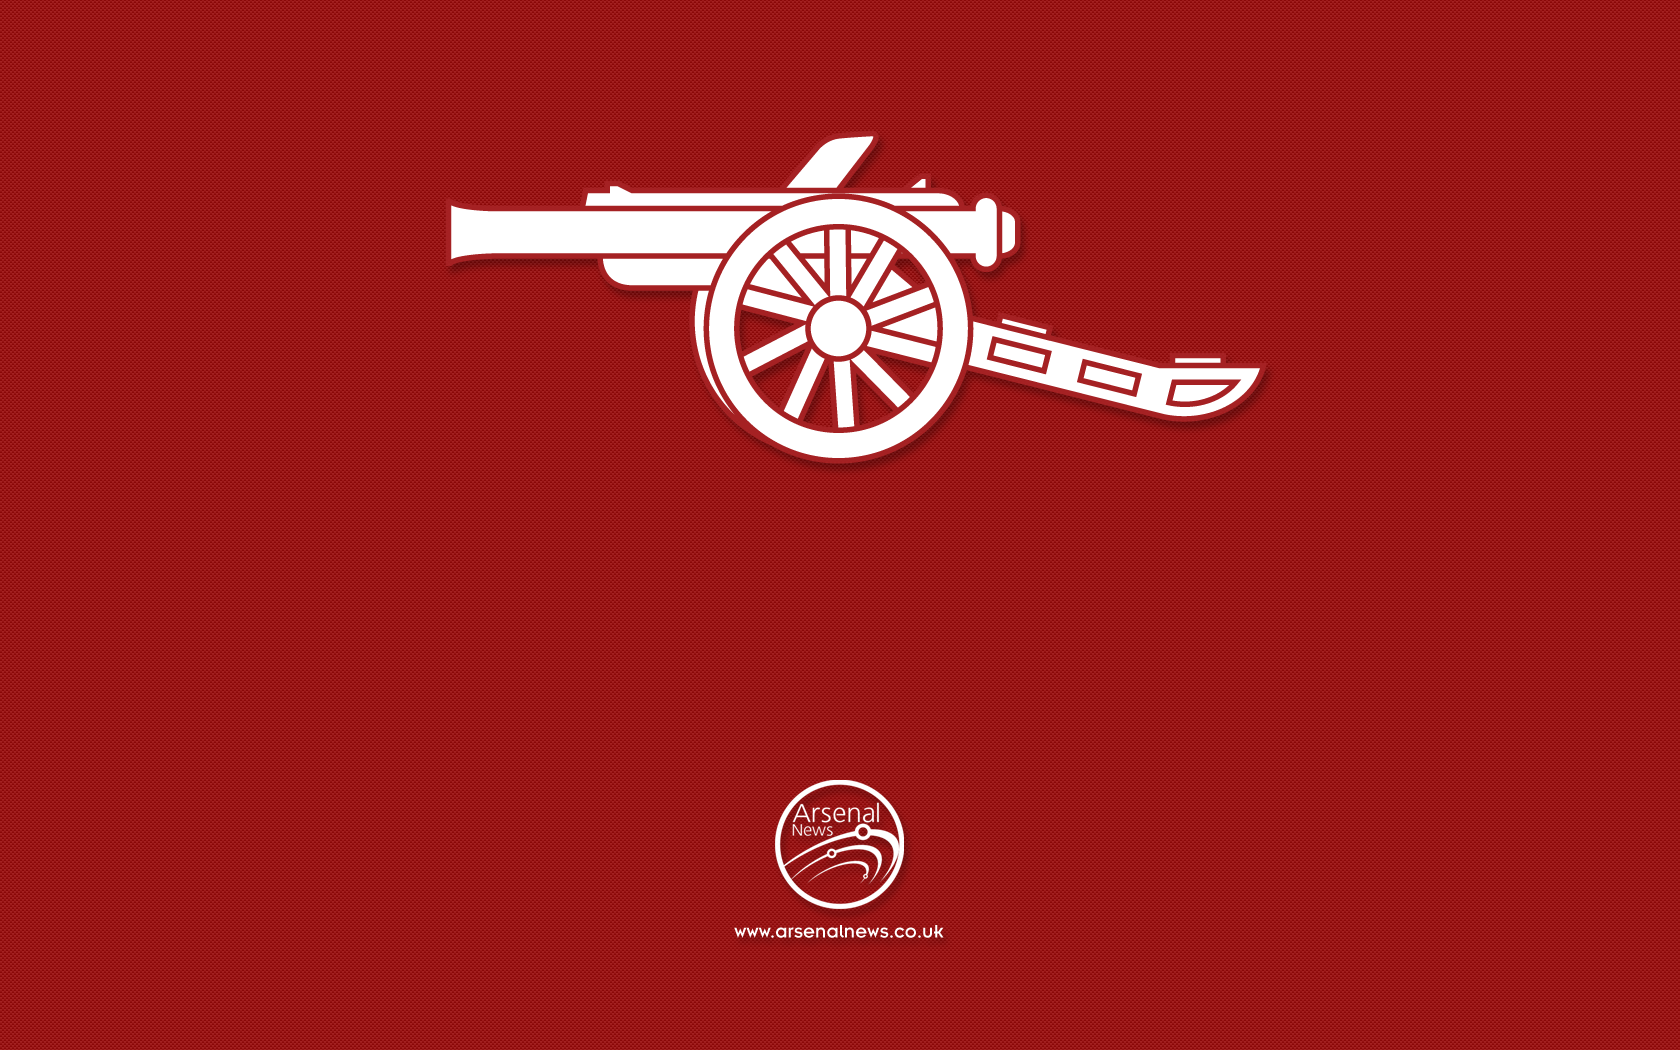 #39656328 1680x1050 Arsenal Wallpapers | Arsenal Wallpapers Collection